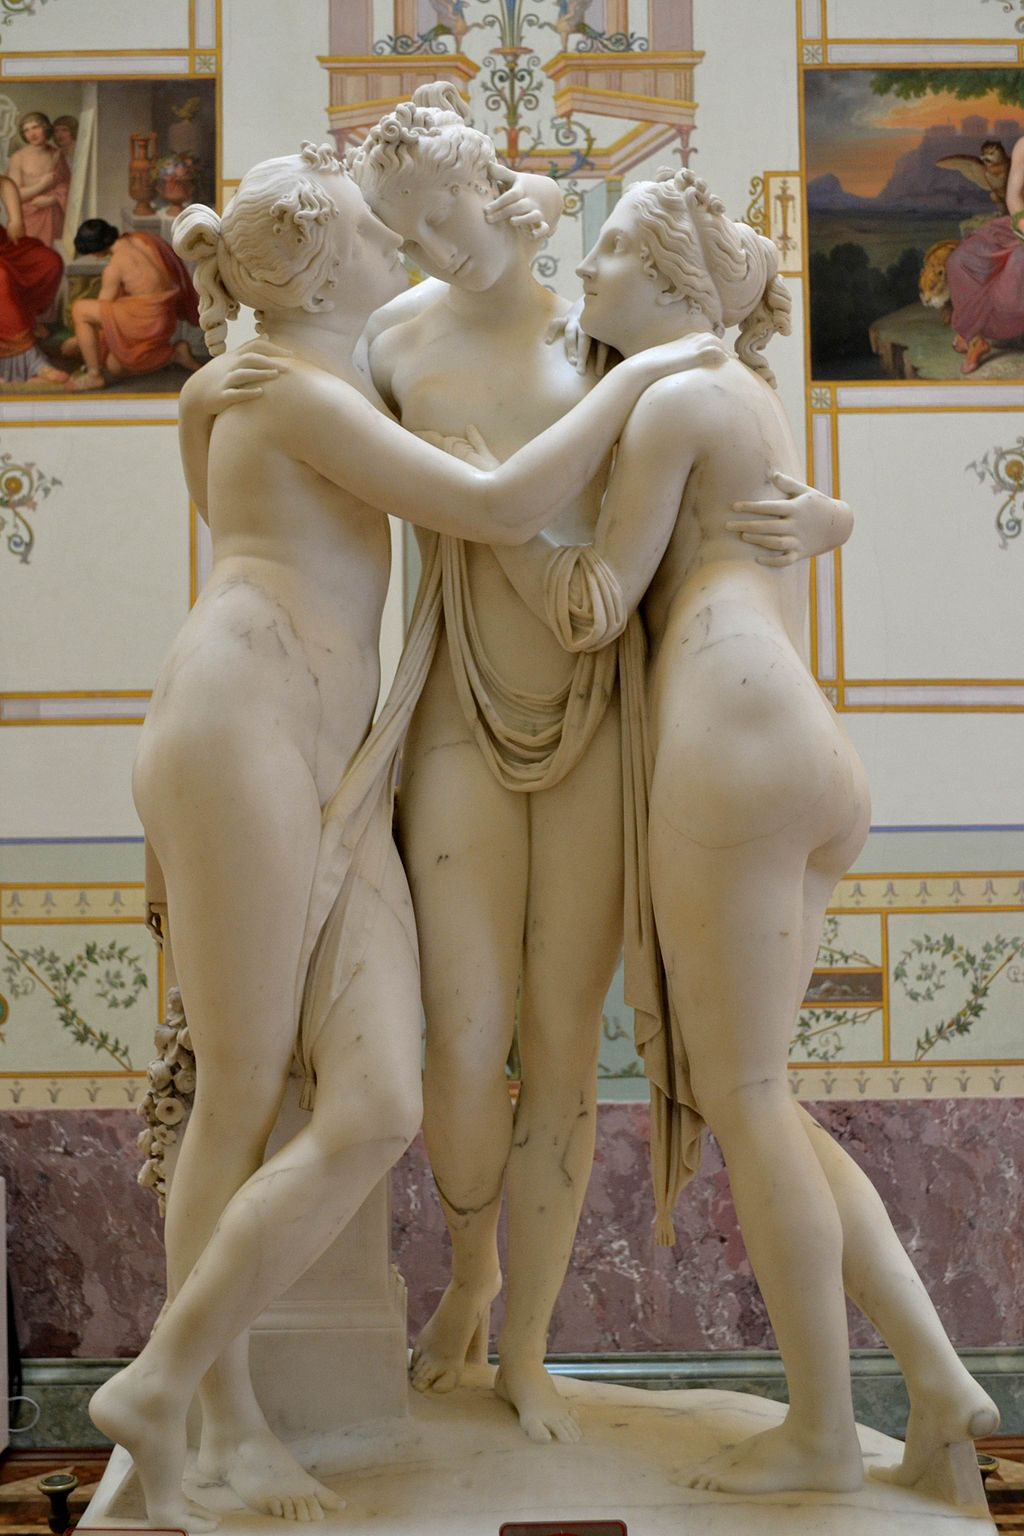 The Three Graces by Antonio Canova1